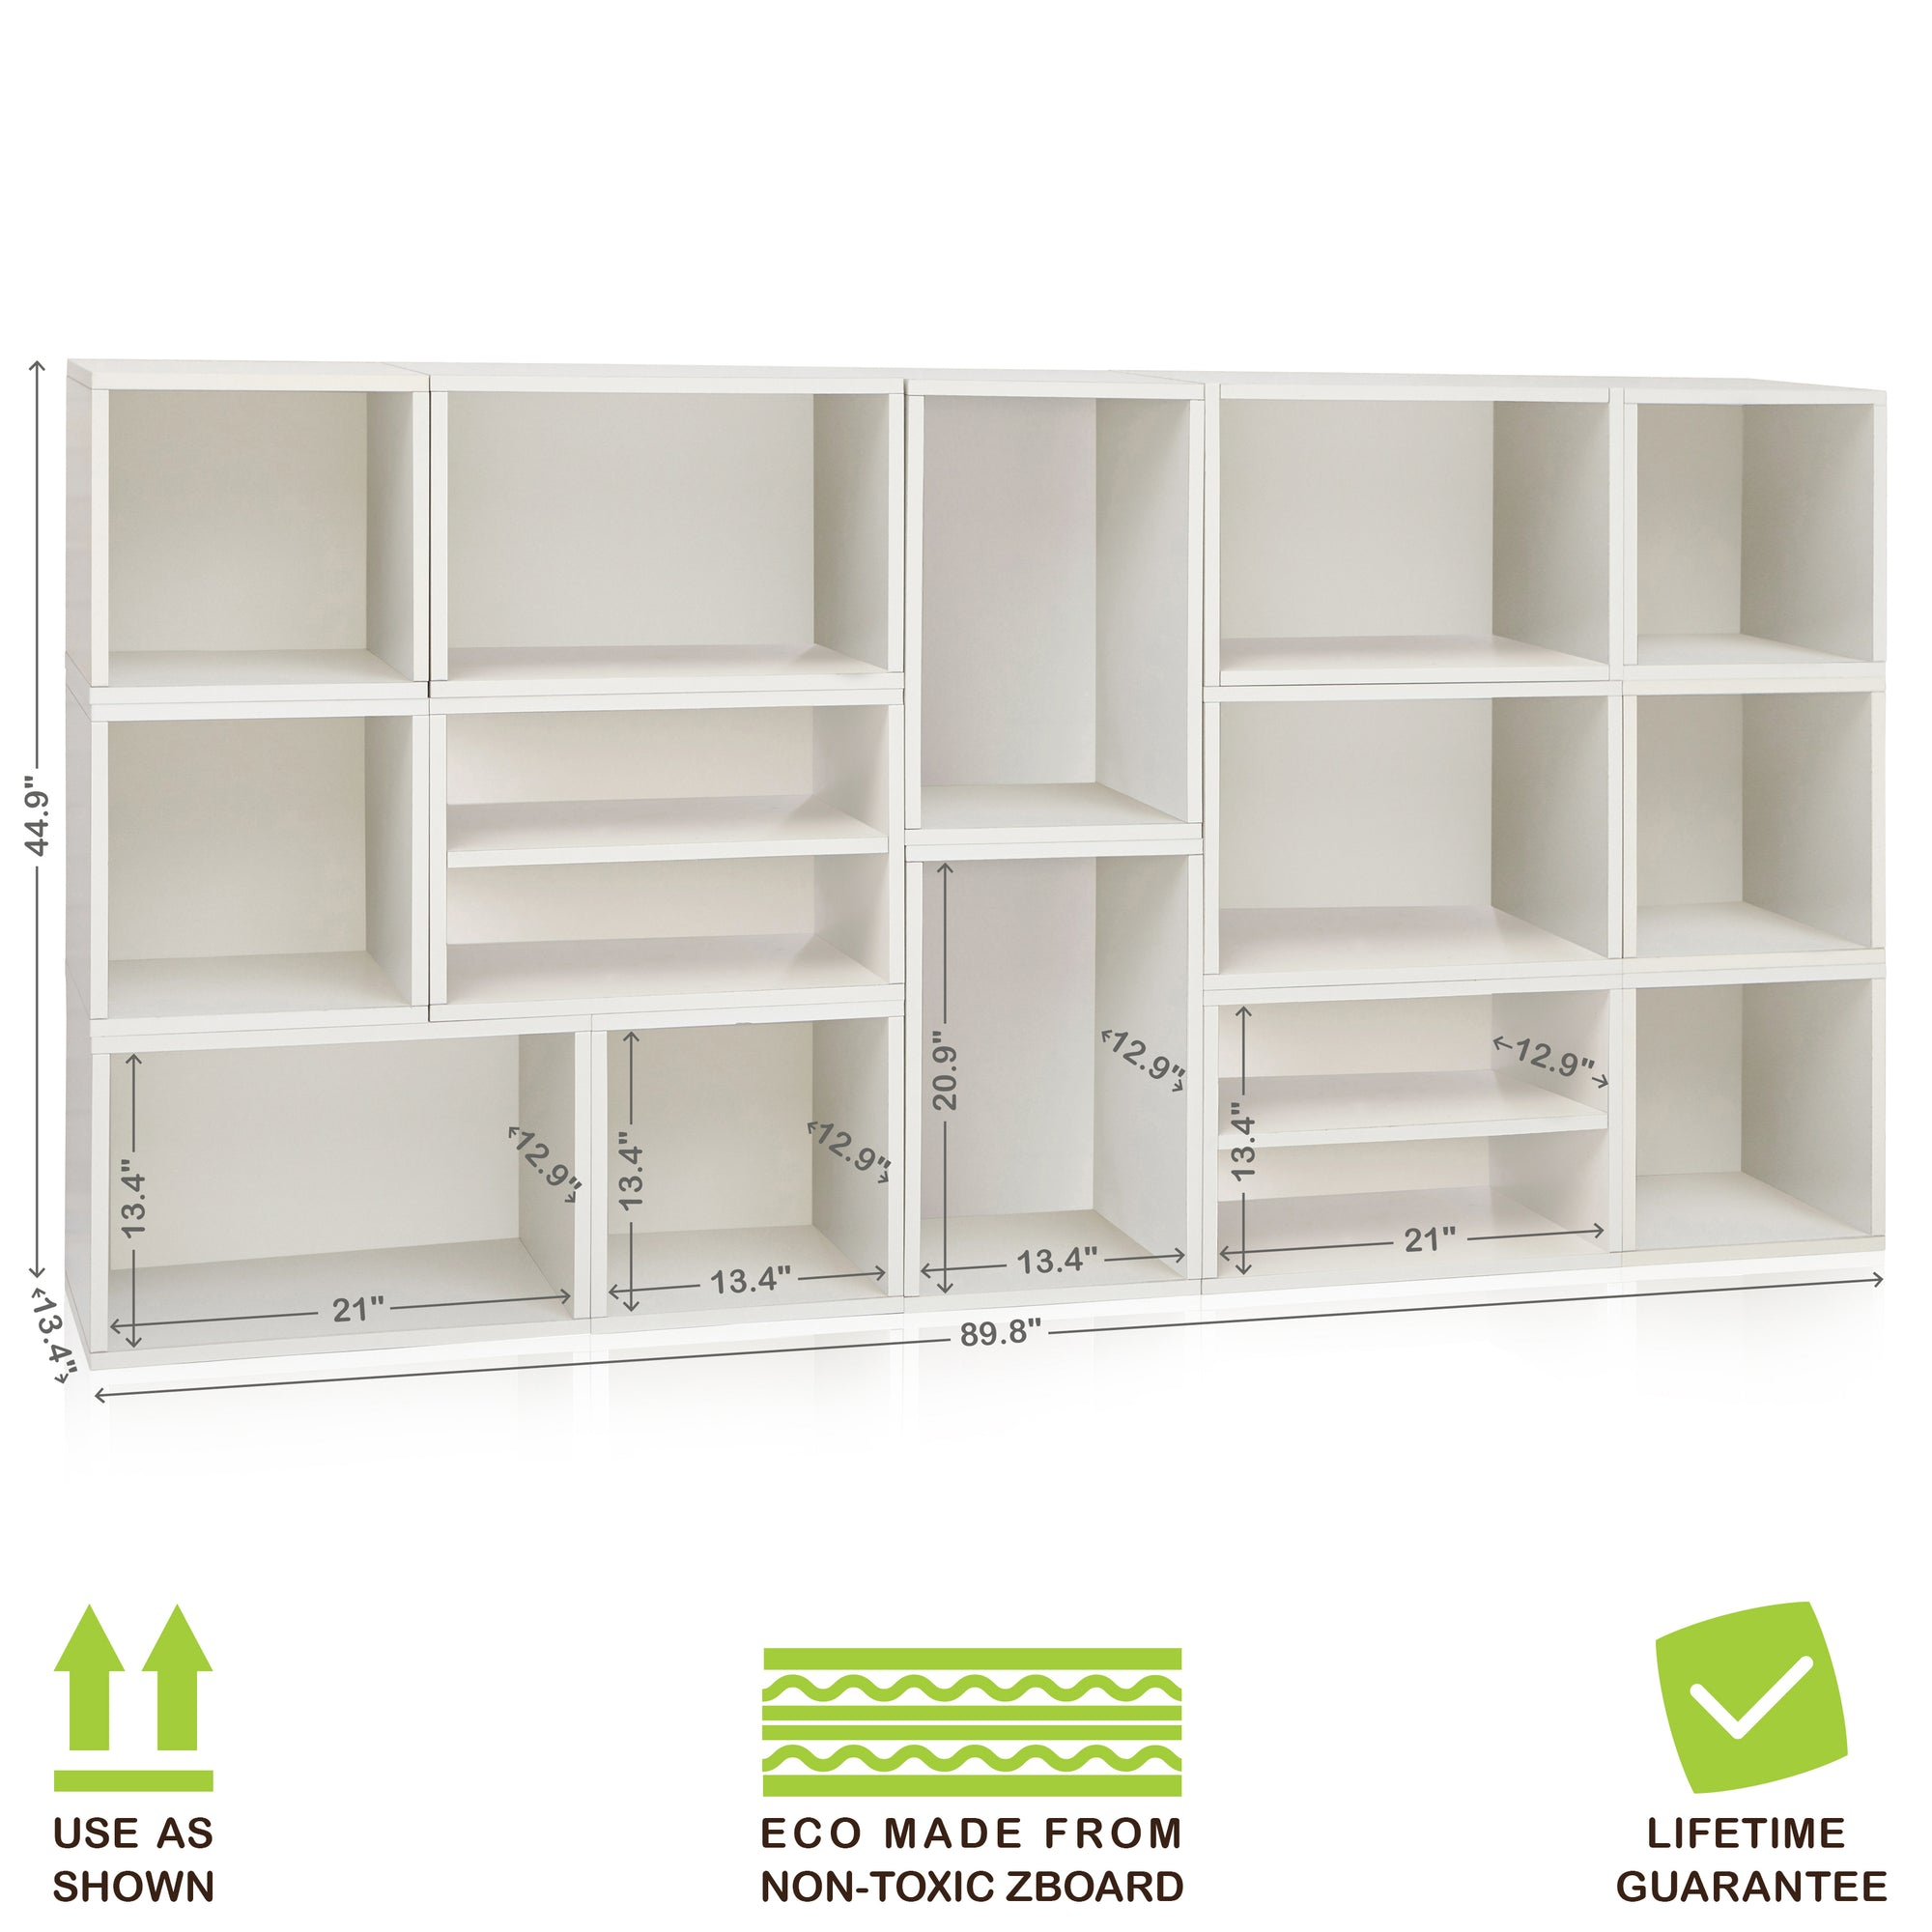 Surprising White Stackable Cube Storage And Modular Wall Storage Shelf Download Free Architecture Designs Rallybritishbridgeorg